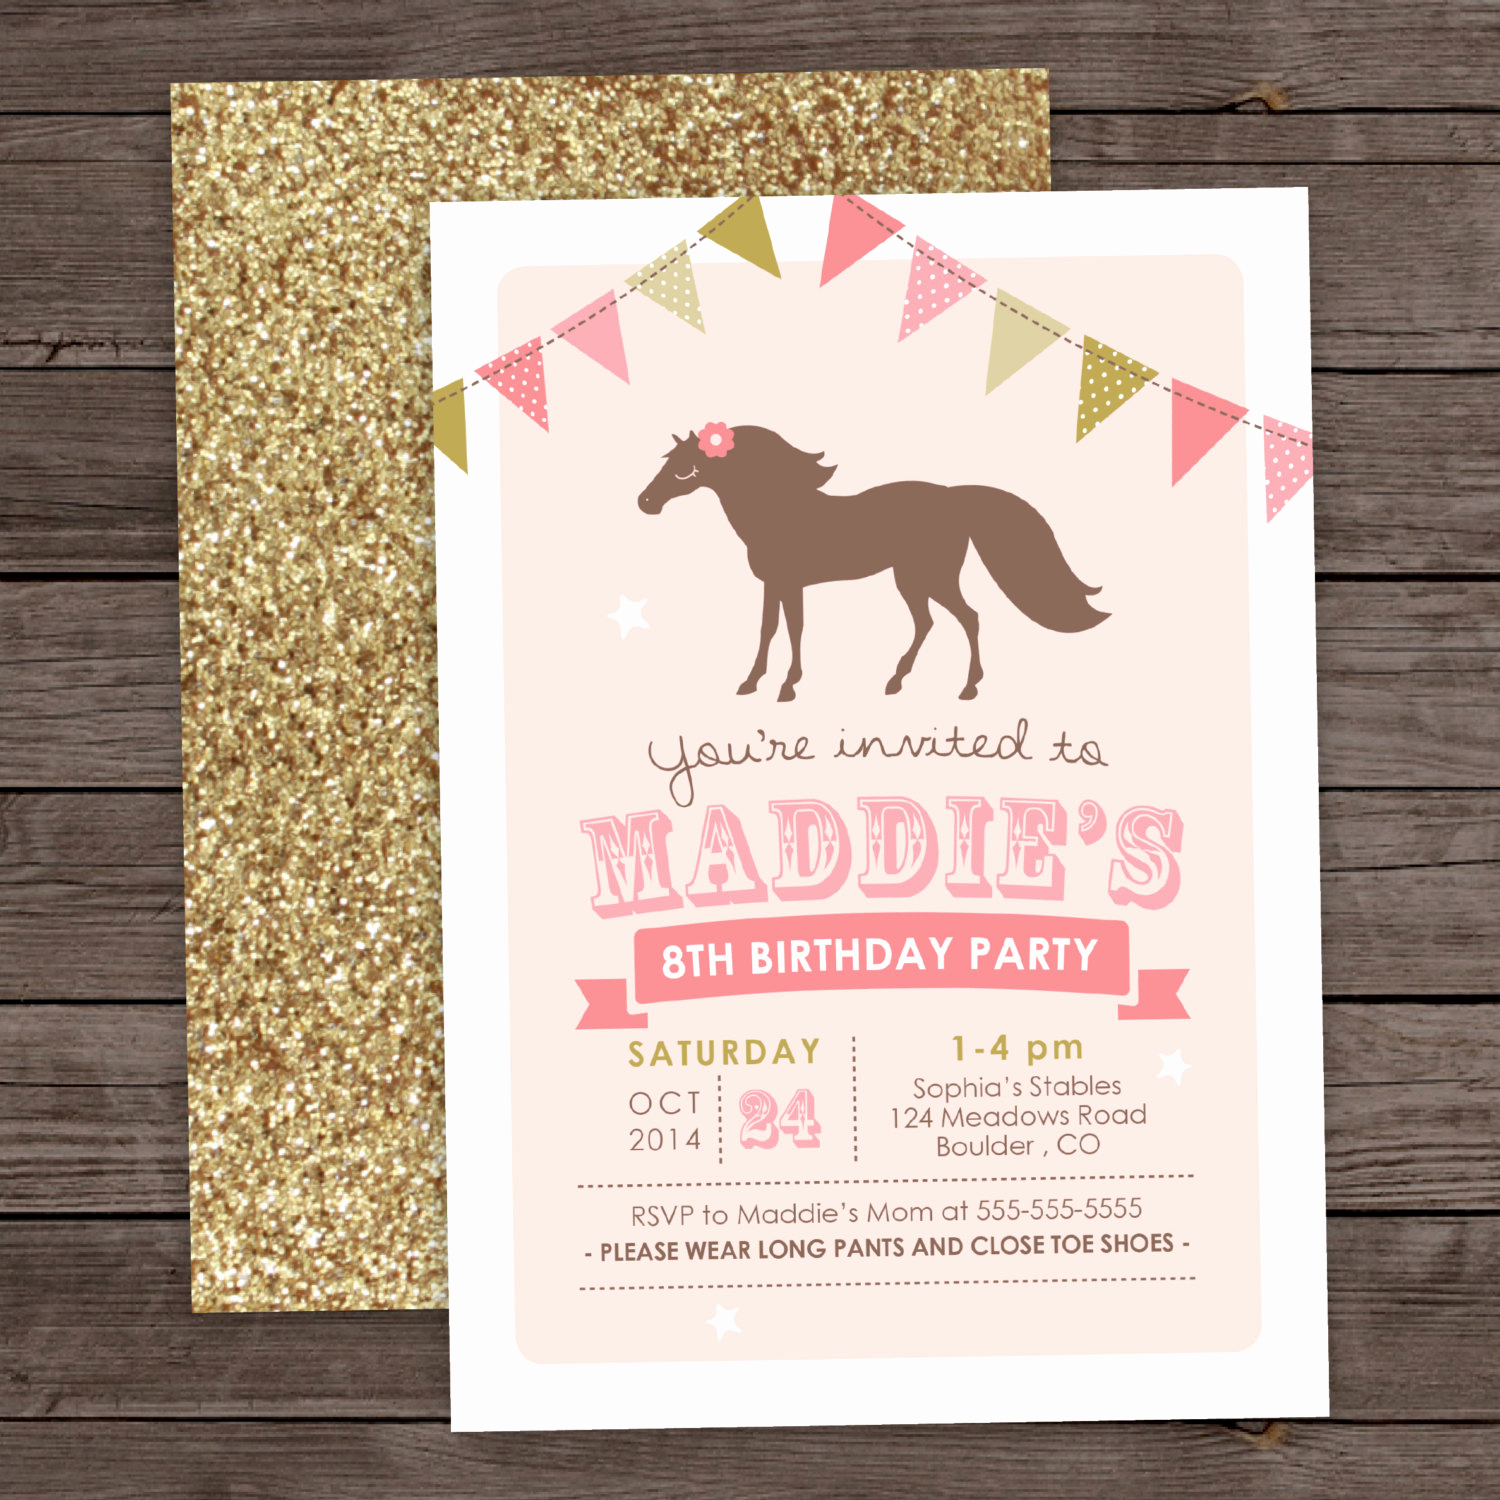 6th Birthday Invitation Wording Luxury Girl Pony Birthday Invitation 5th 6th 8th Birthday Glitter